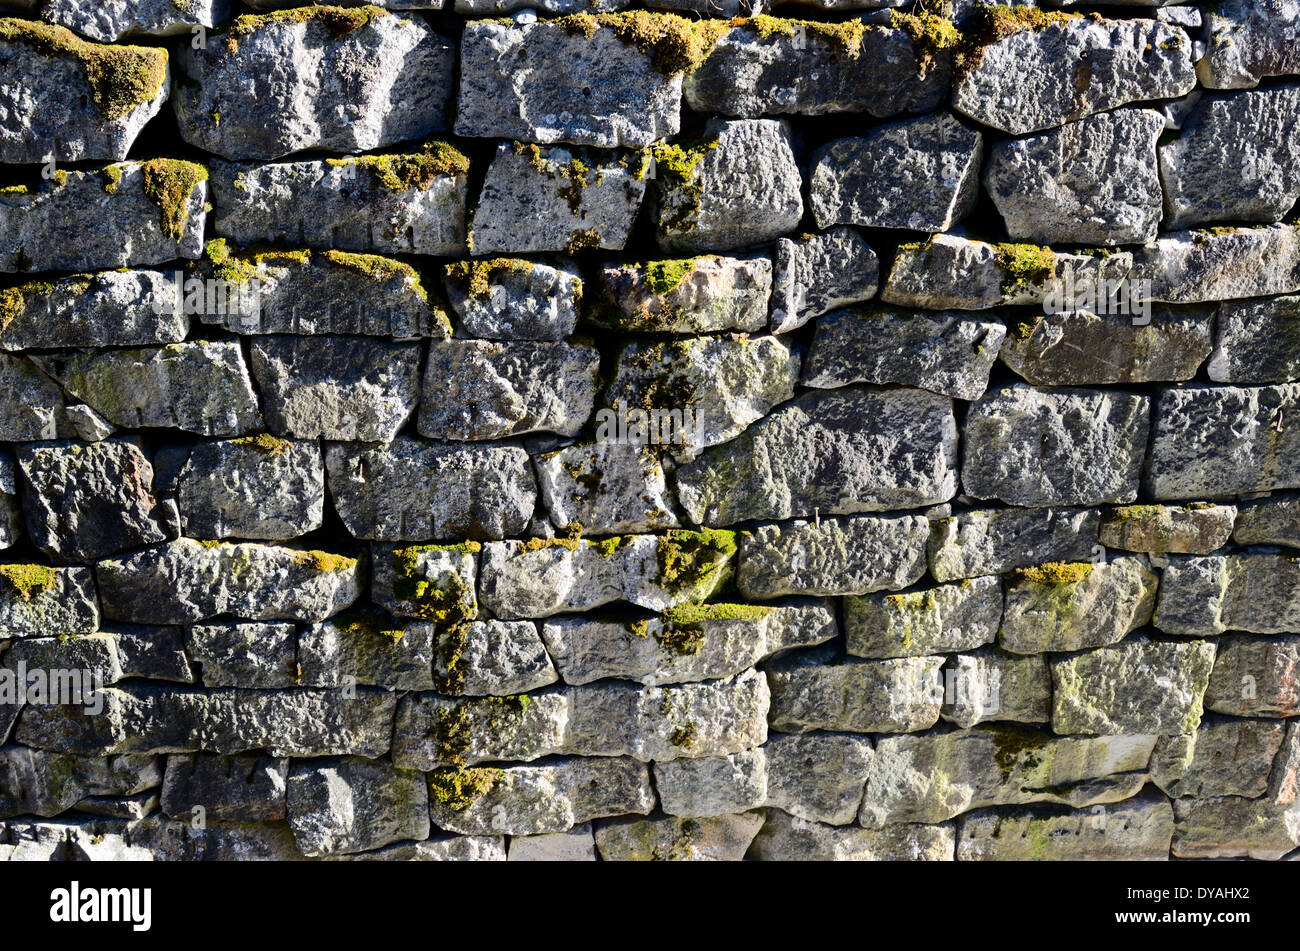 ancient granite stone wall channel mossy, horizontal - Stock Image